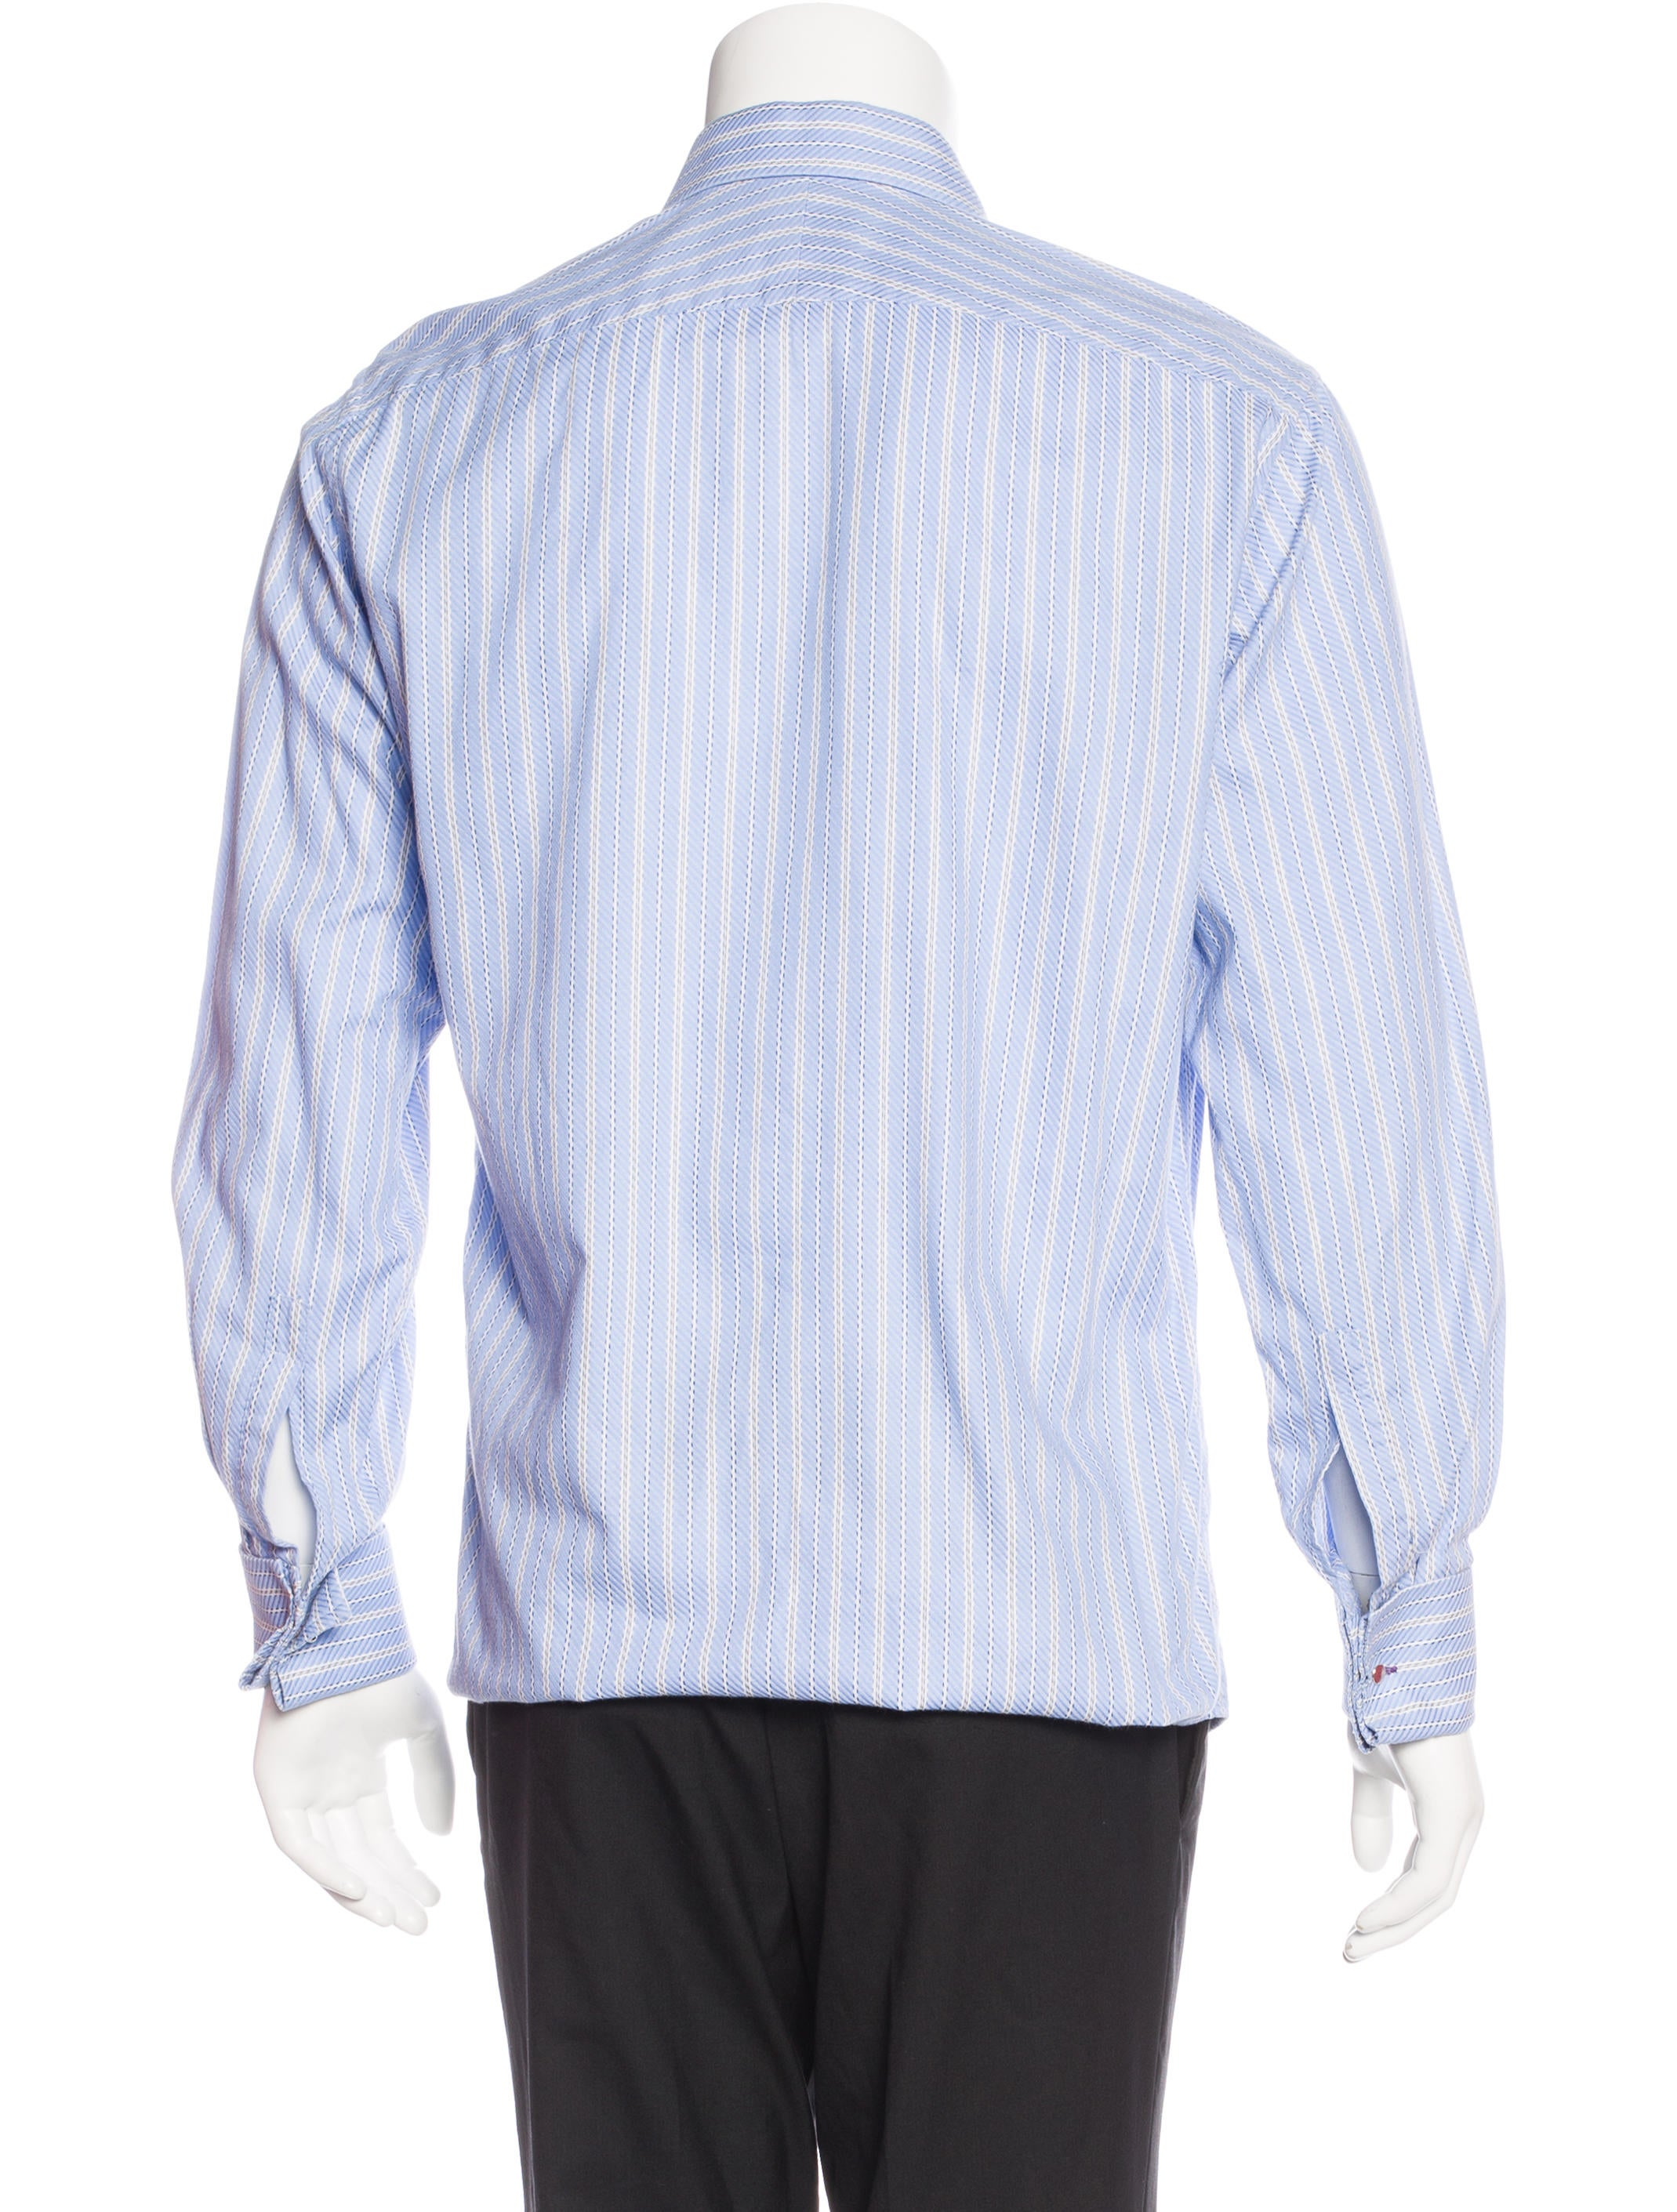 paul smith french cuff striped shirt clothing wps23709. Black Bedroom Furniture Sets. Home Design Ideas